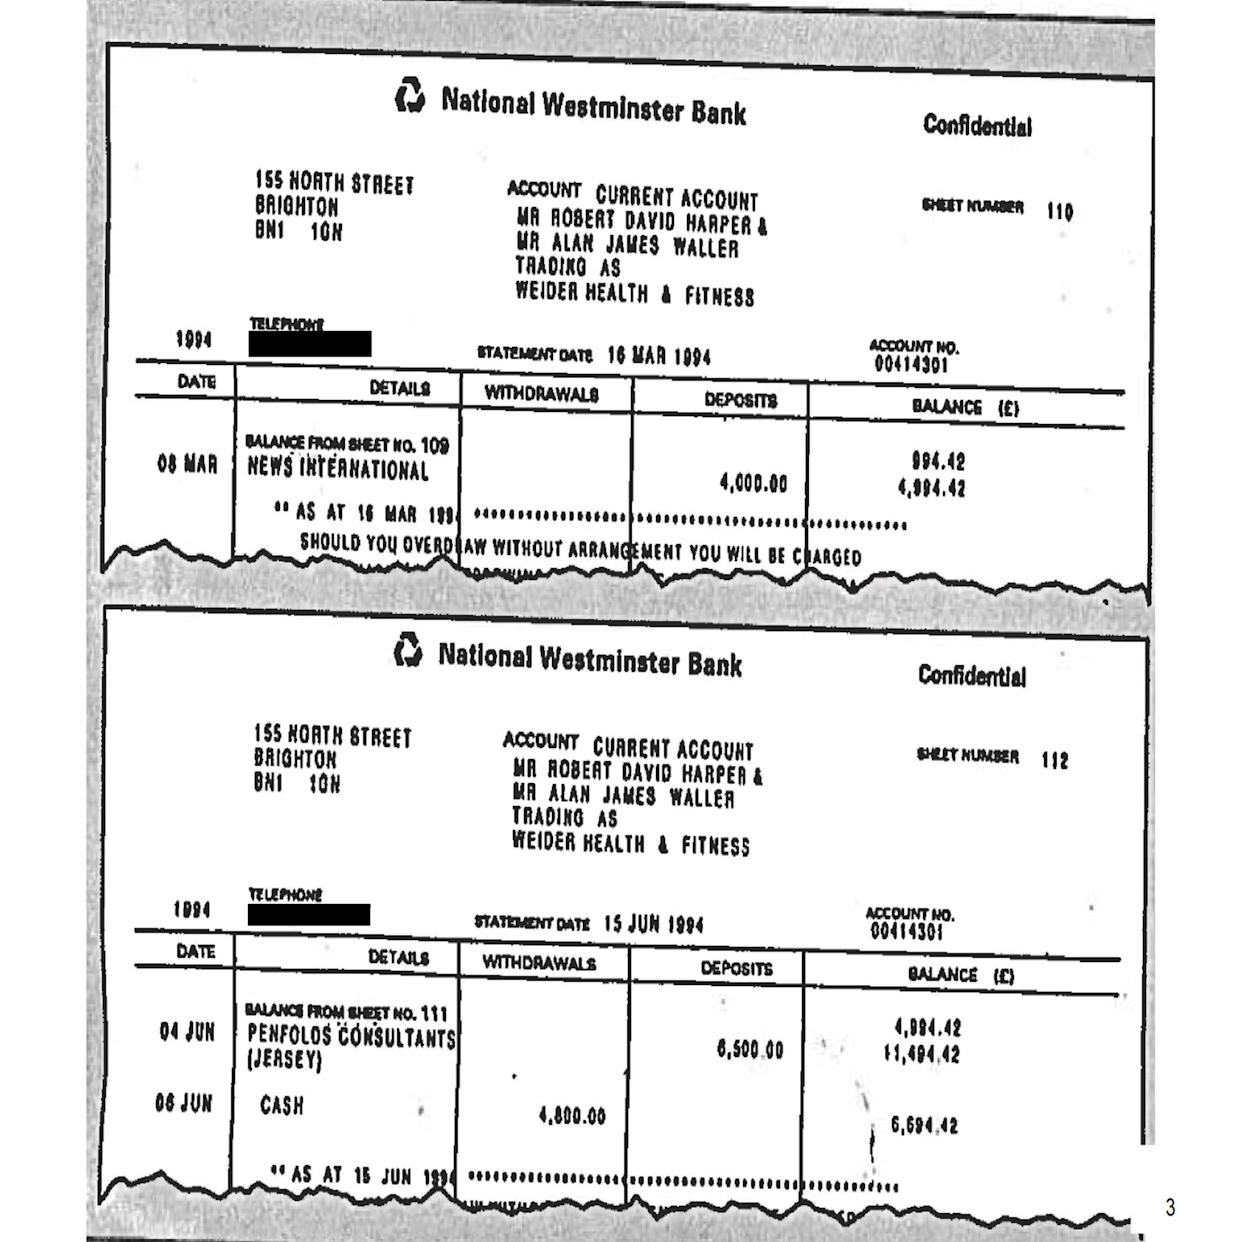 Fake bank statements relating to News International and Penfold Consultants (Jersey), as published in an Annex to Lord Dyson's independent investigation into the circumstances around the programme. Issue date: Thursday May 20, 2021.